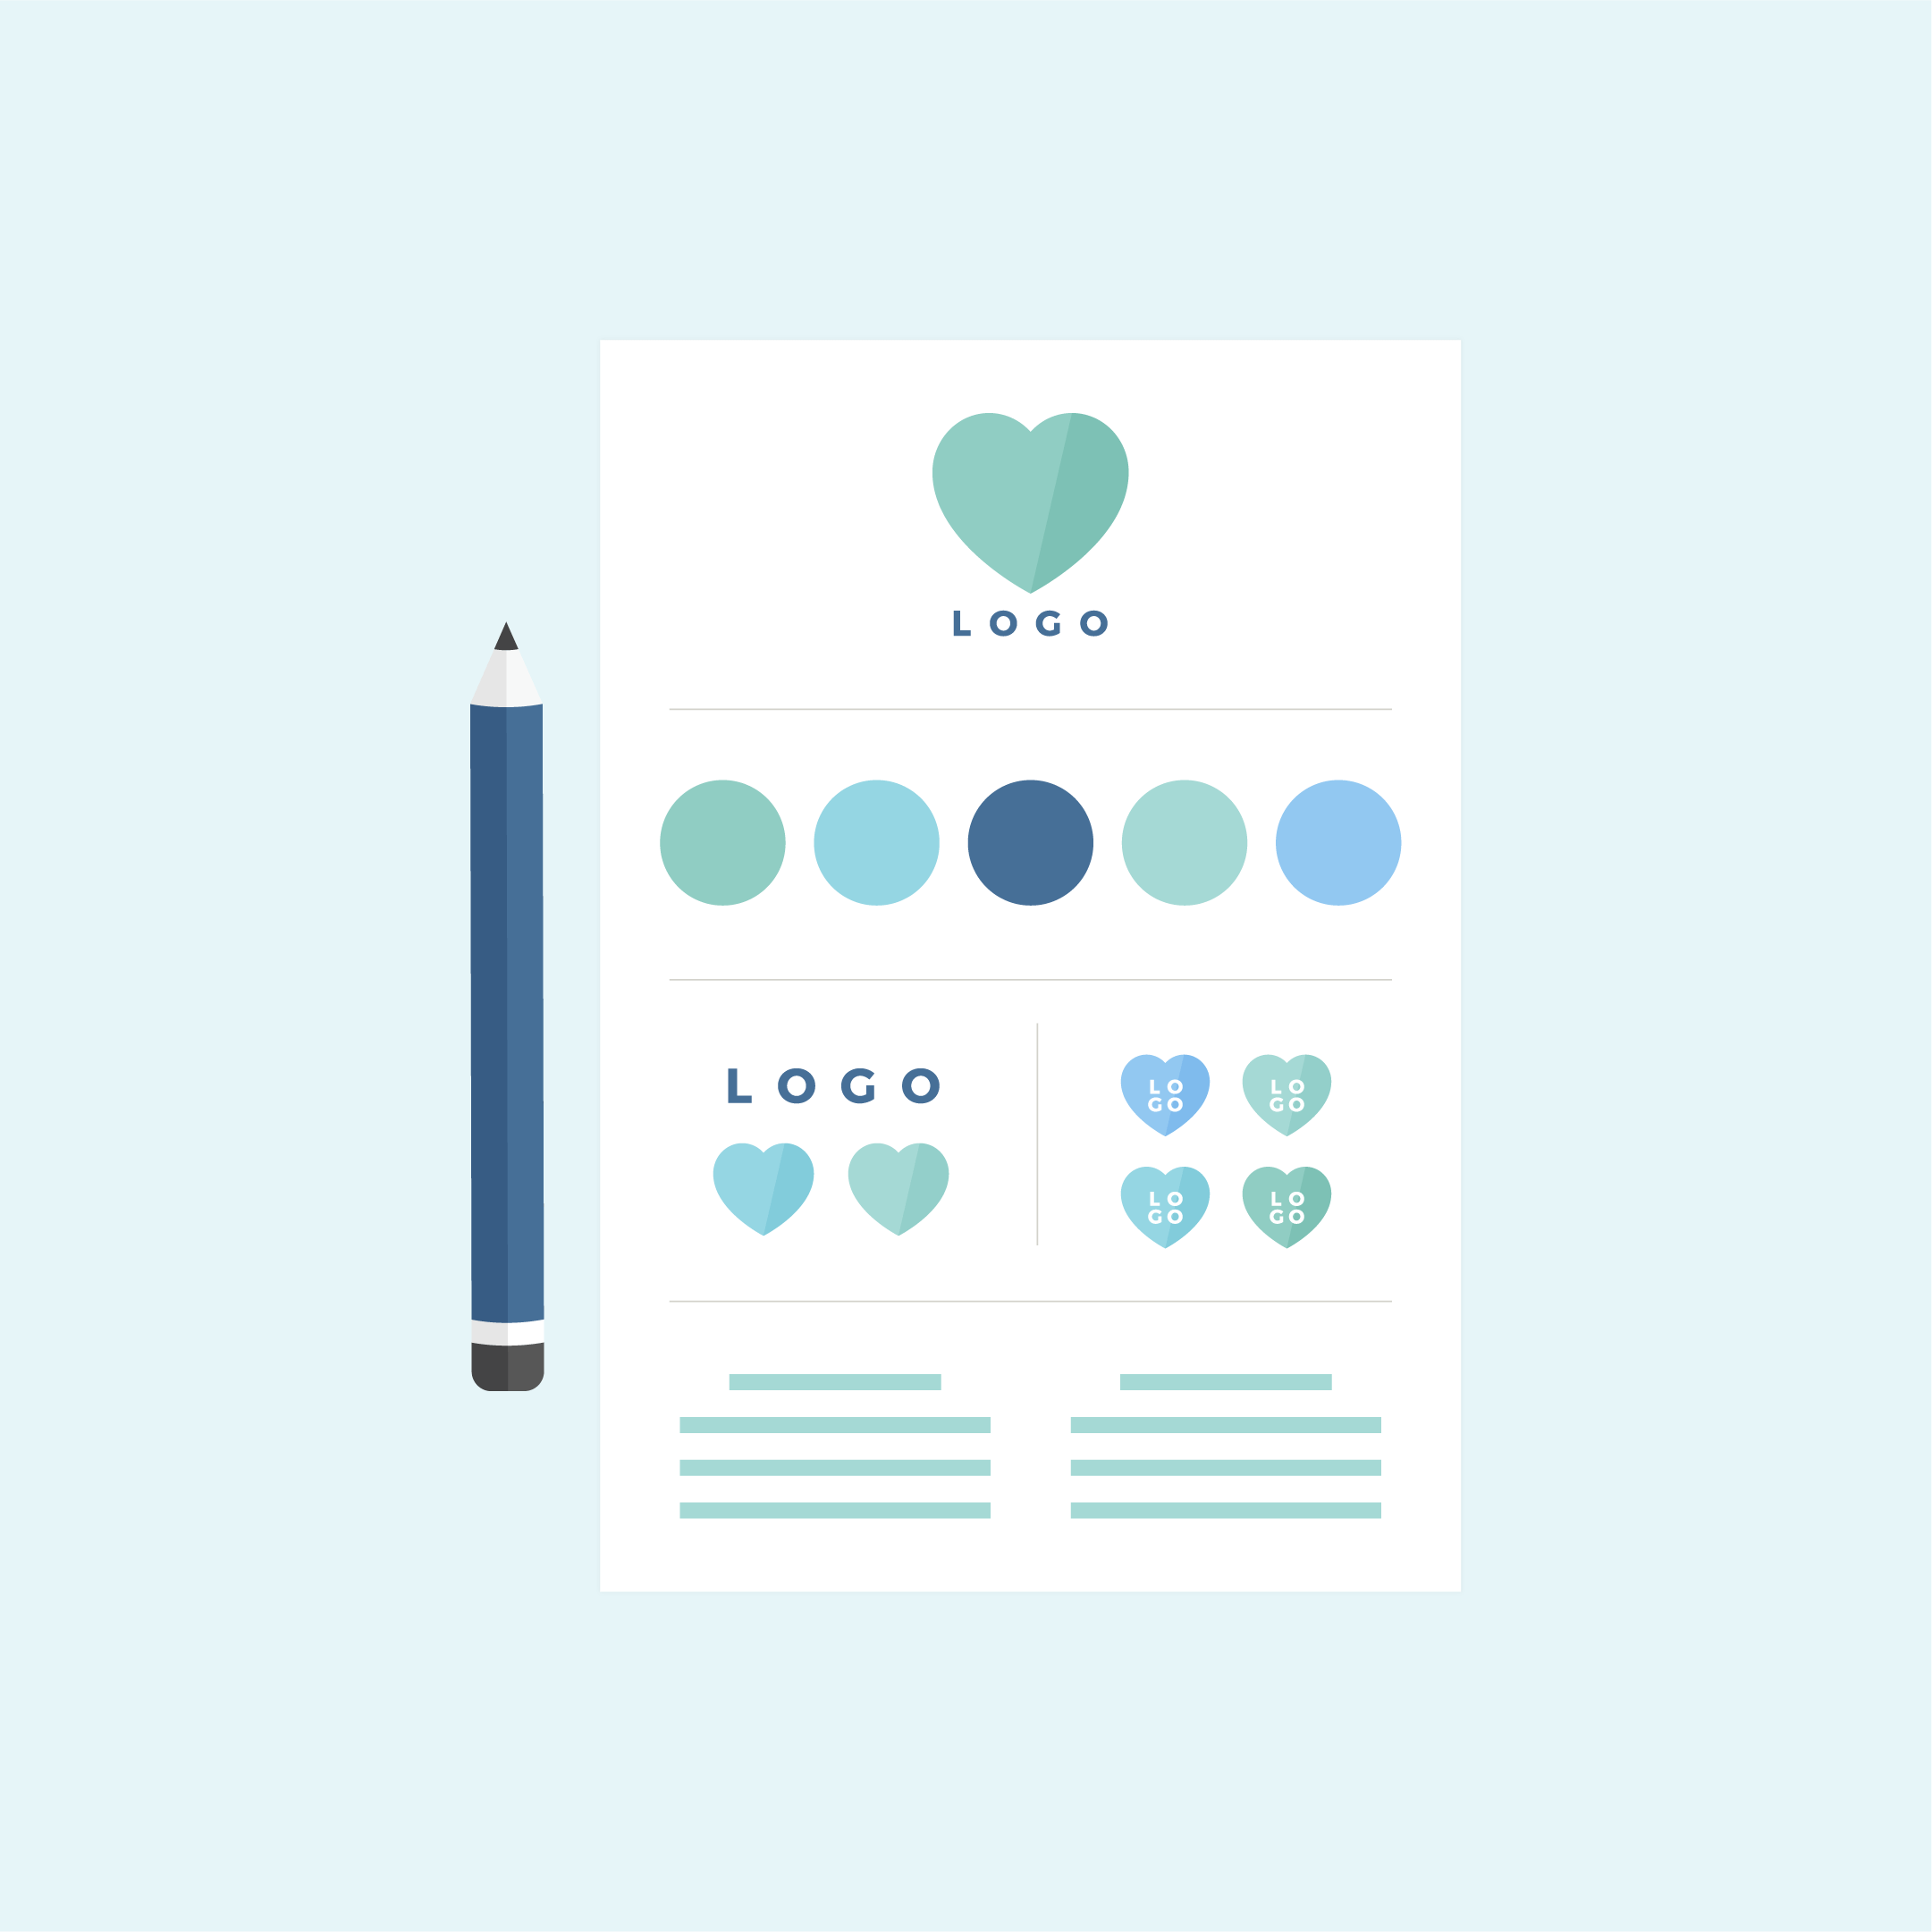 Vector illustration of a brand board including main logo, colour palette, submarks, alternative logos and navy blue pencil in flat design style